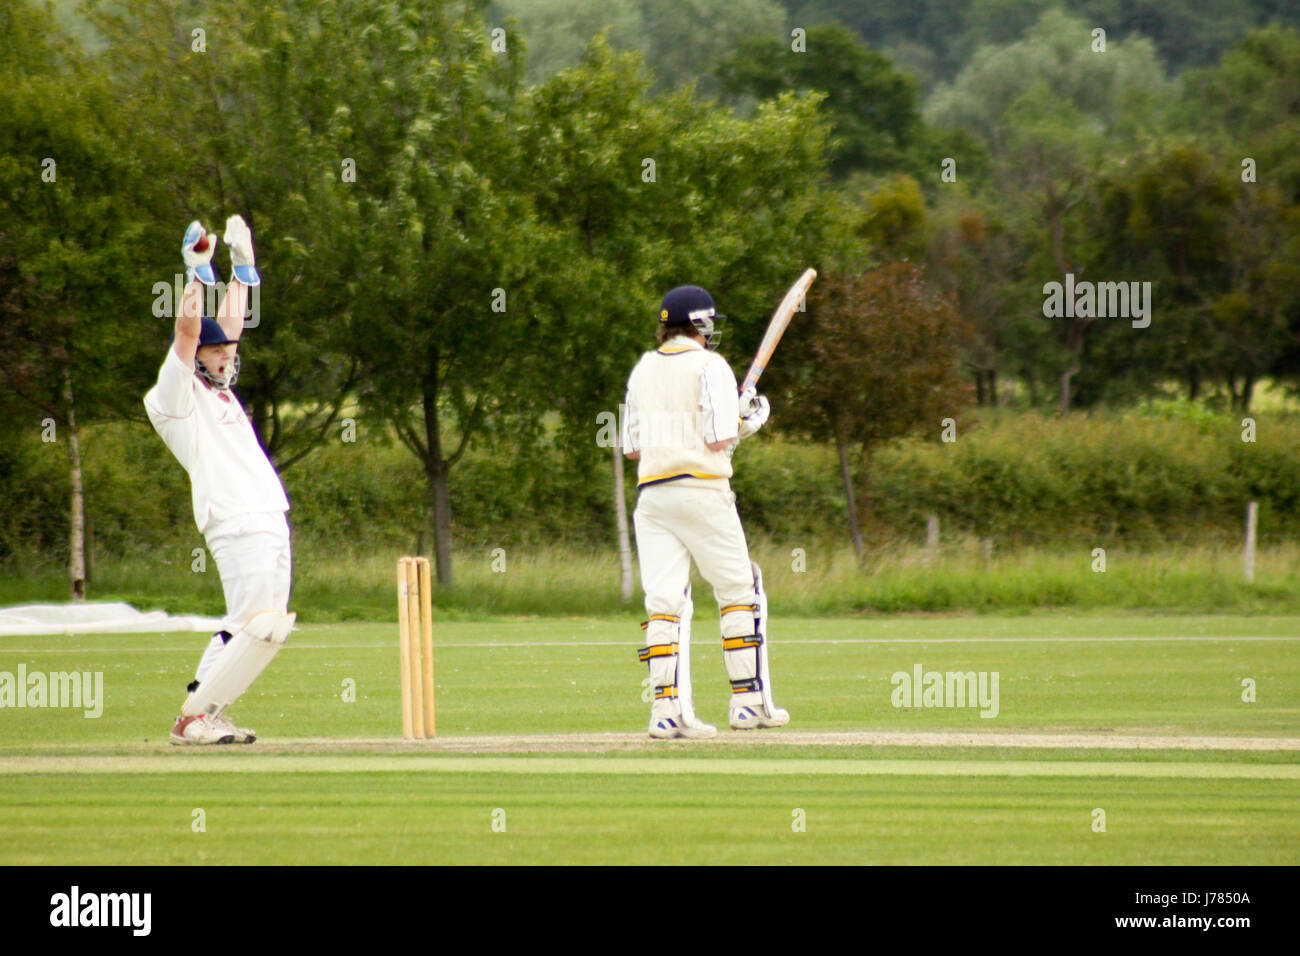 How's that! Wicket keeper makes a catch - Stock Image